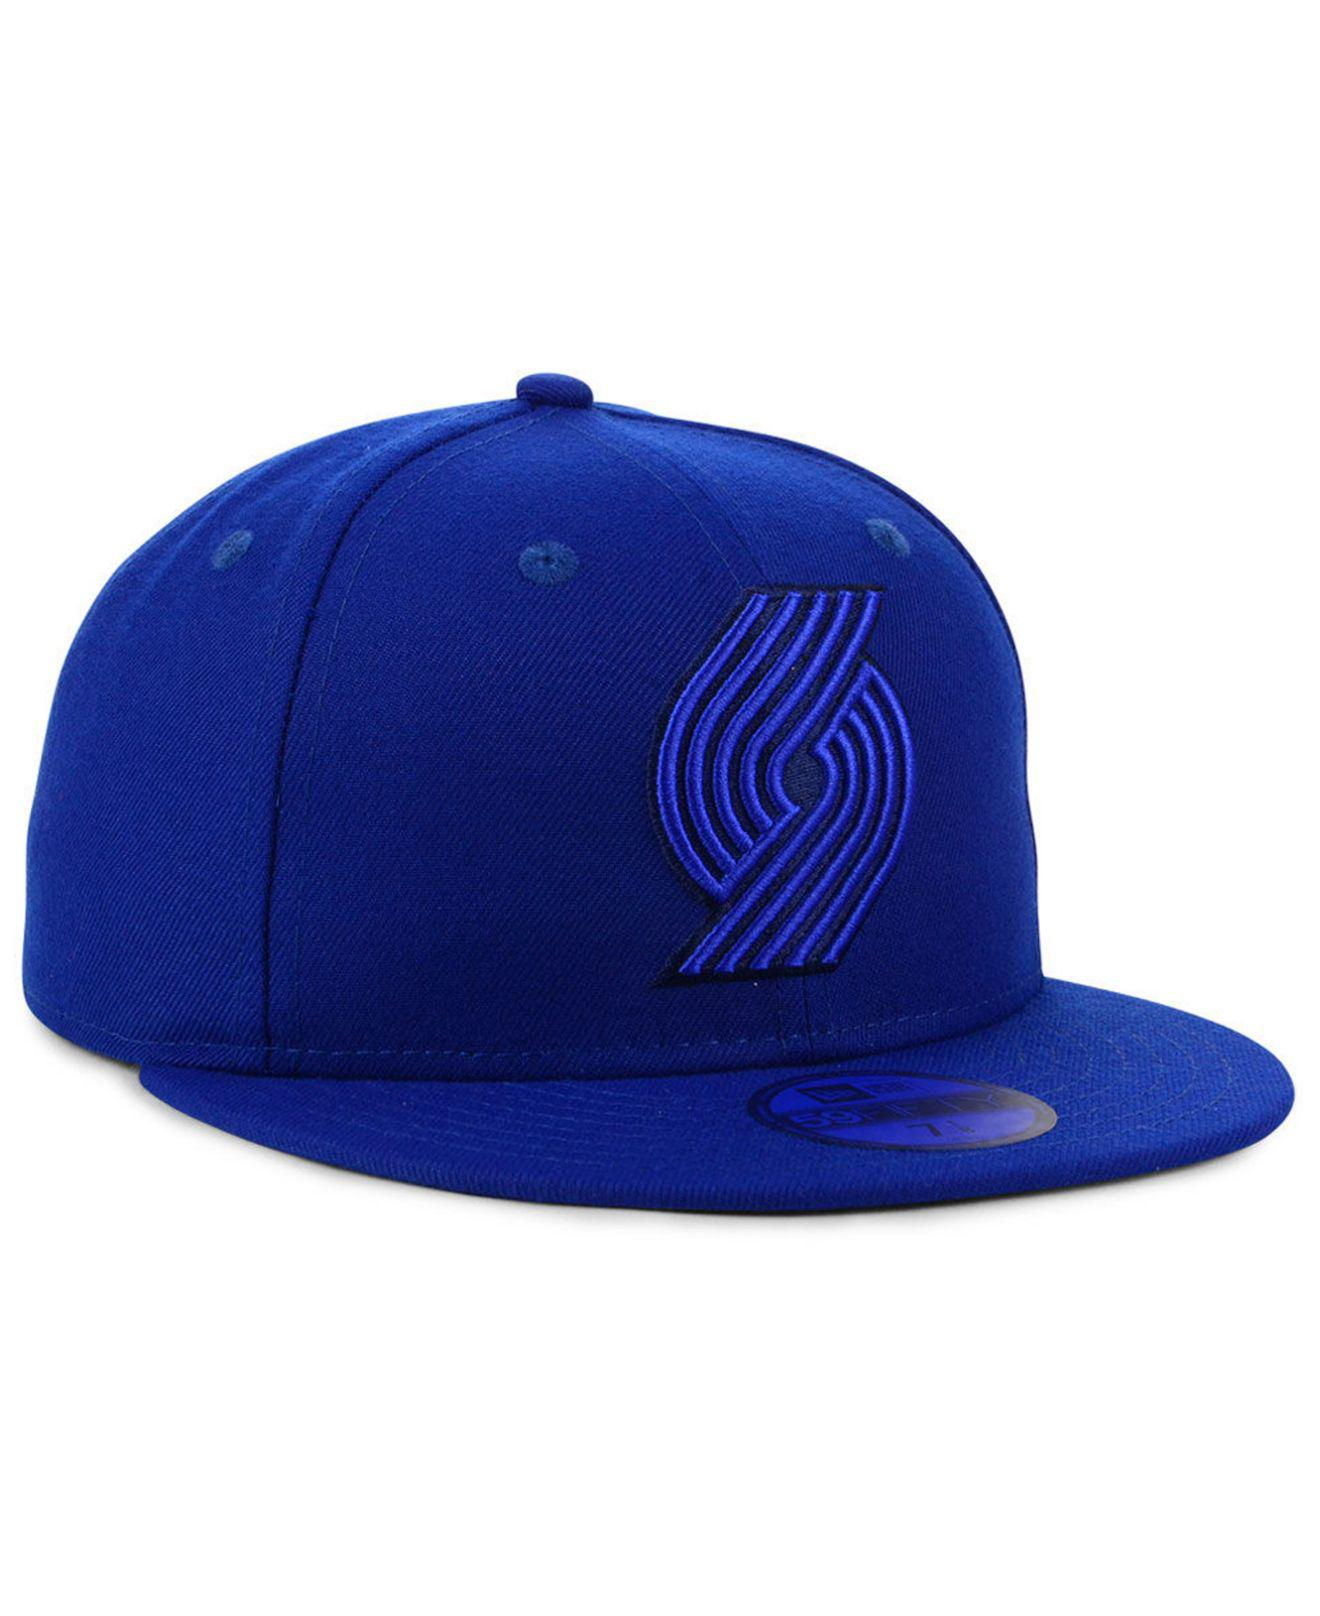 on sale a2080 0c4b8 ... usa color prism pack 59fifty fitted cap for men lyst. view fullscreen  936b1 bbece